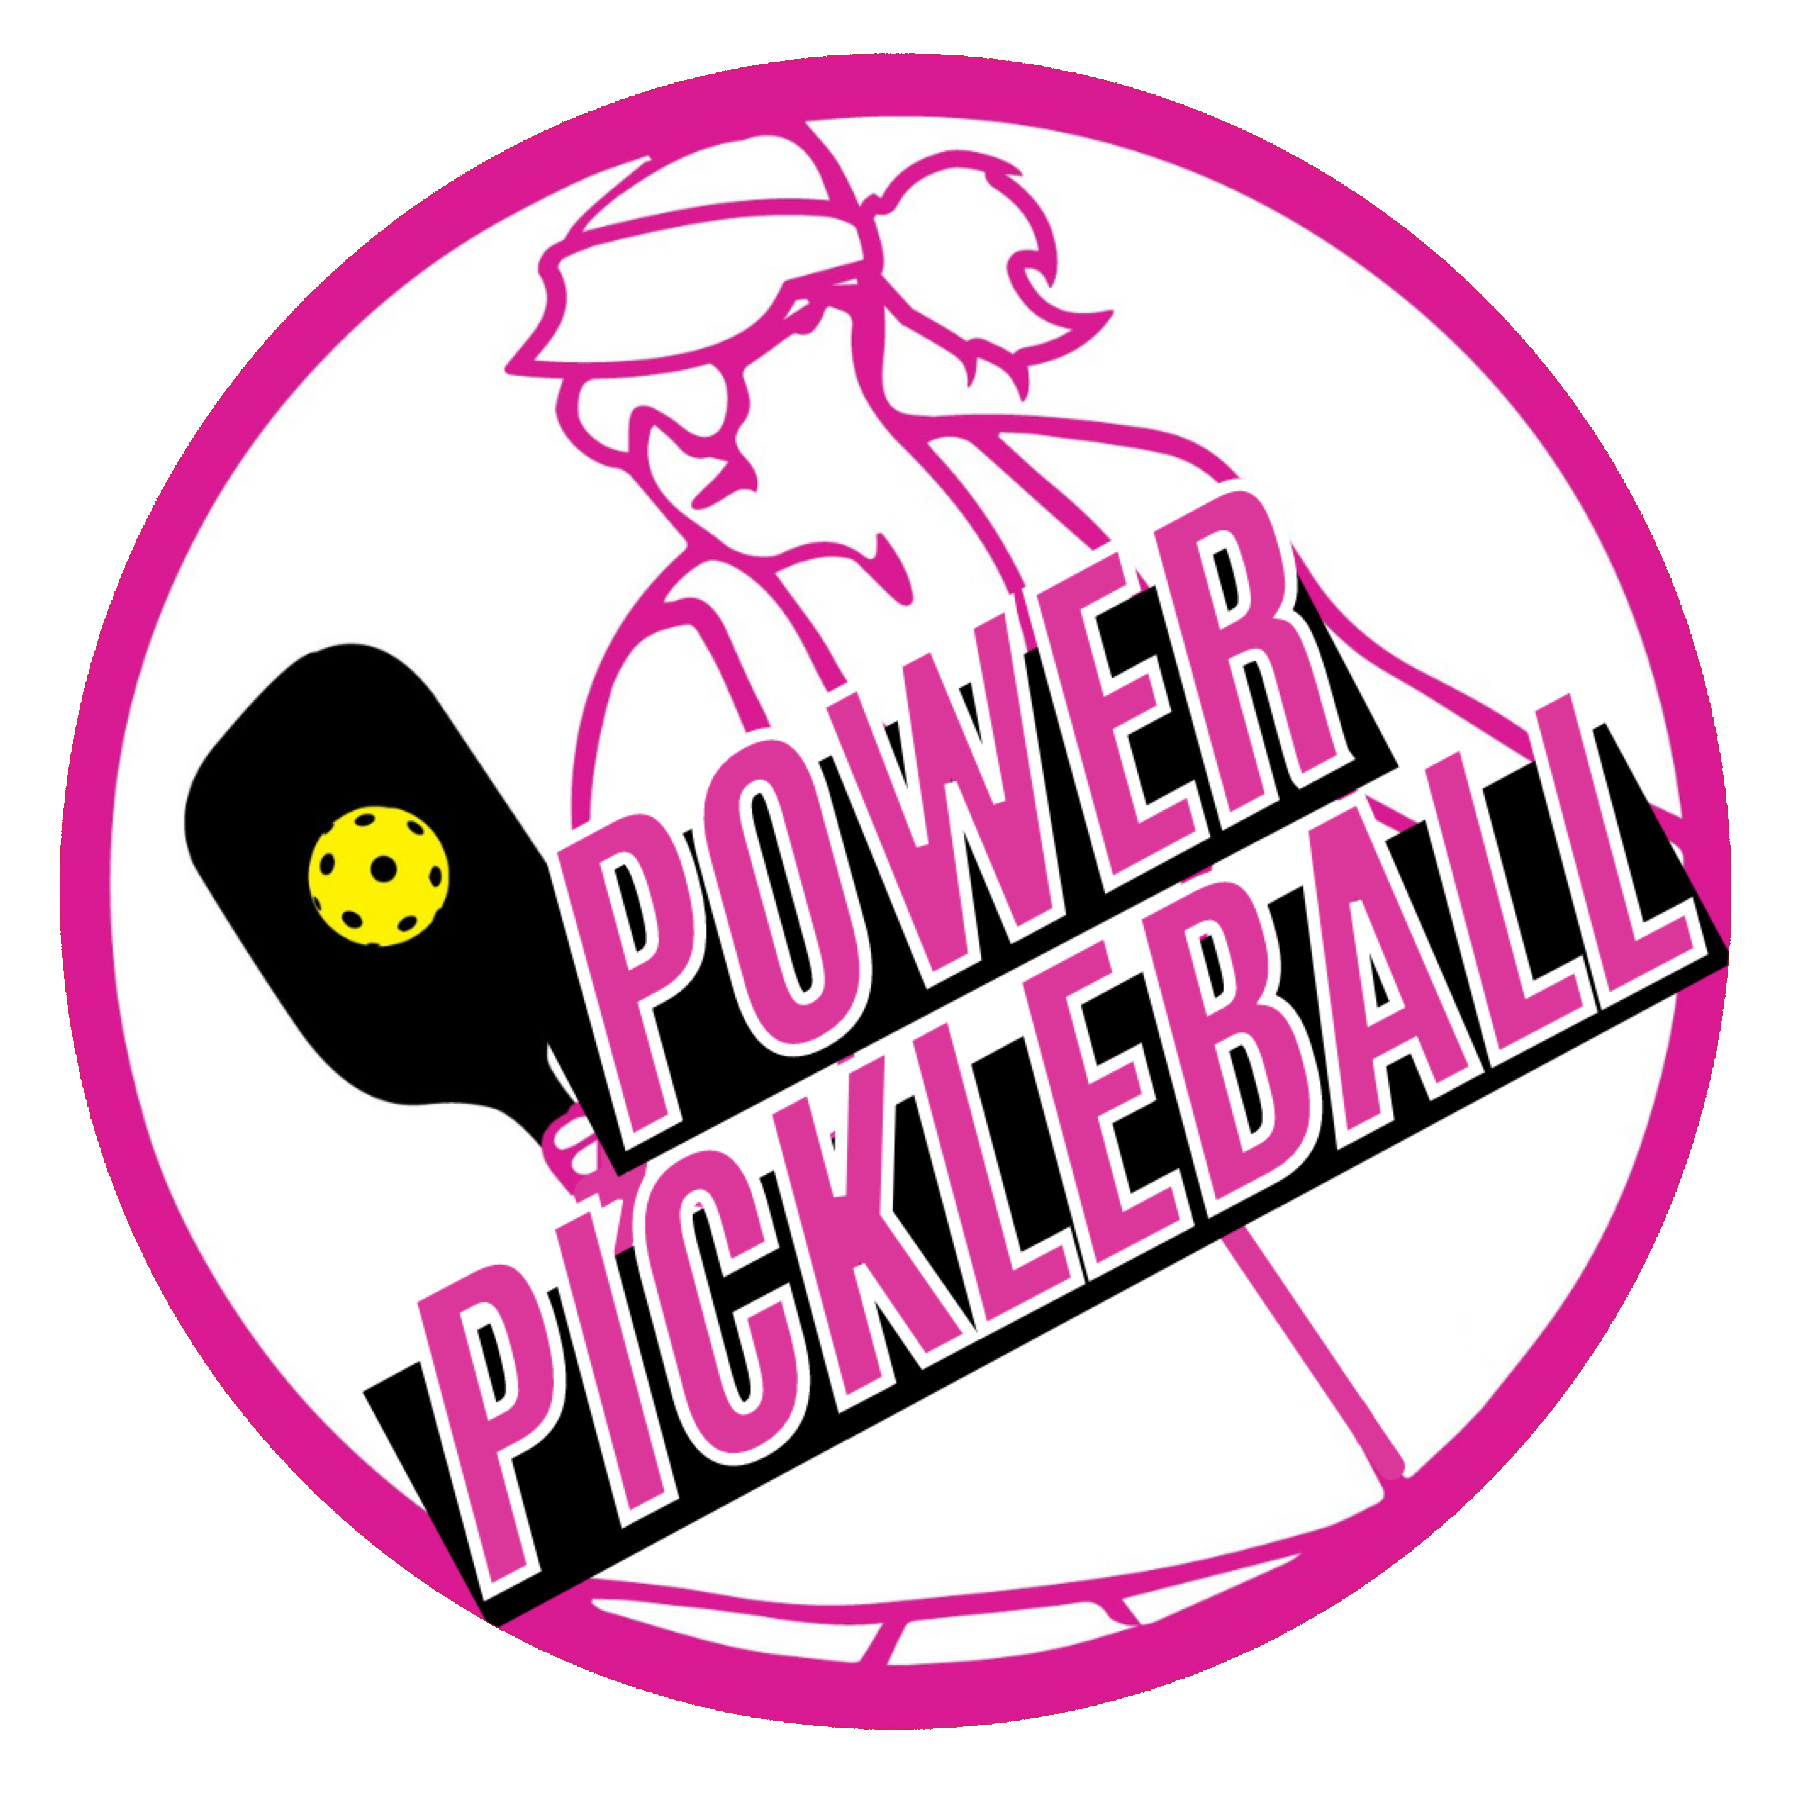 Power Pickleball